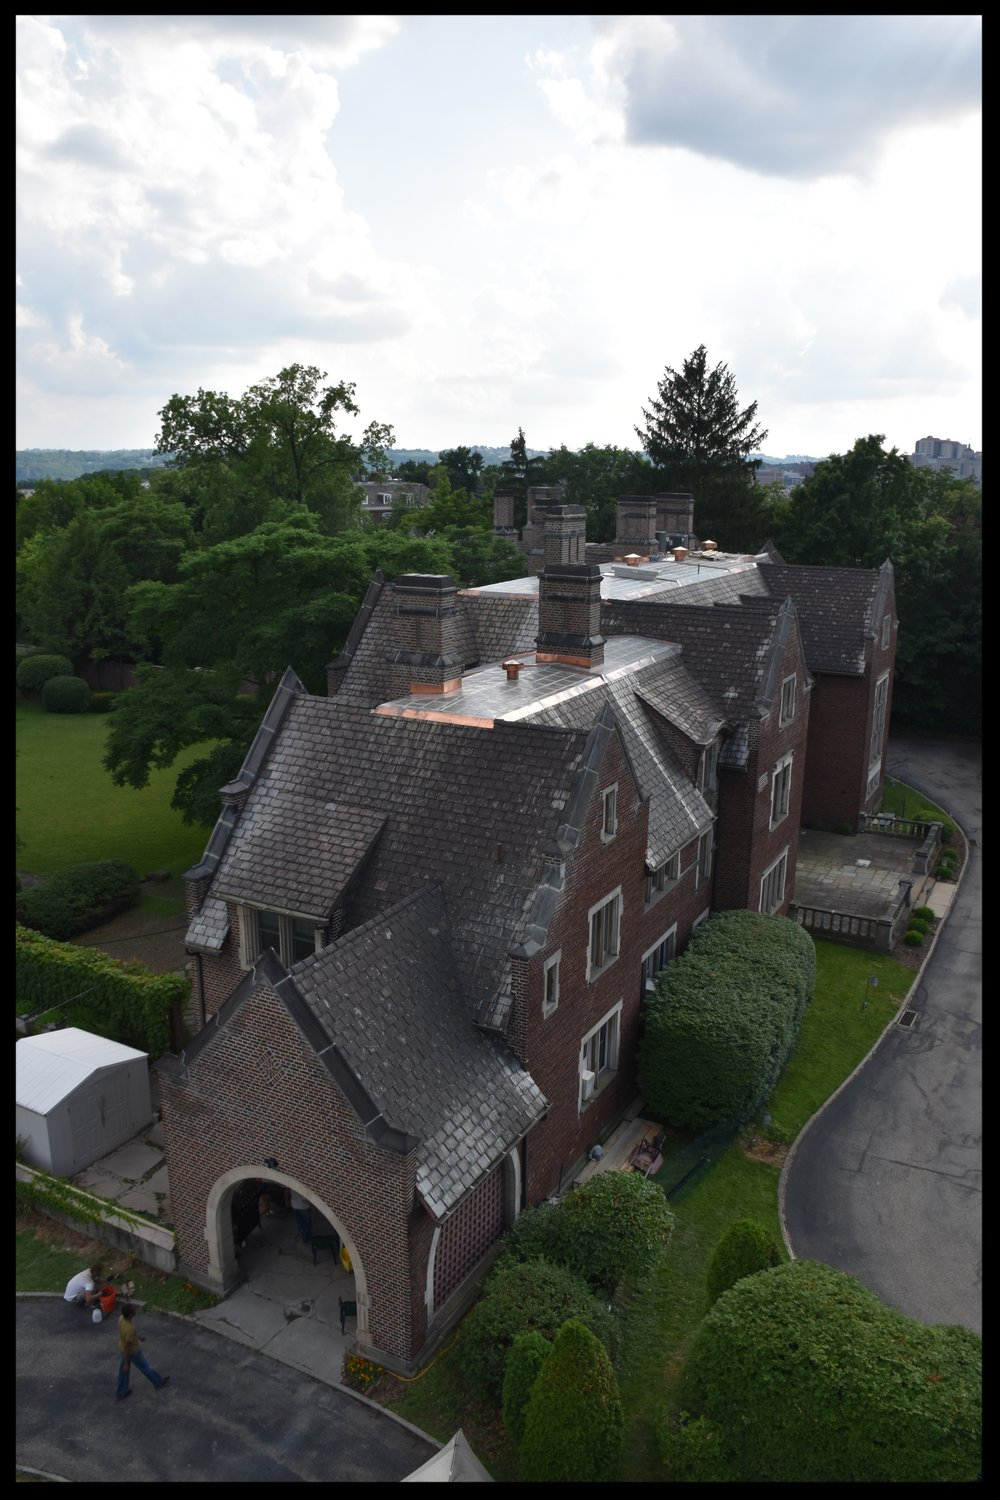 Recent work - Complete restoration of Heinz Mansion (now Warwick Foundation) located in Pittsburgh, PA. (Completed July 2016).